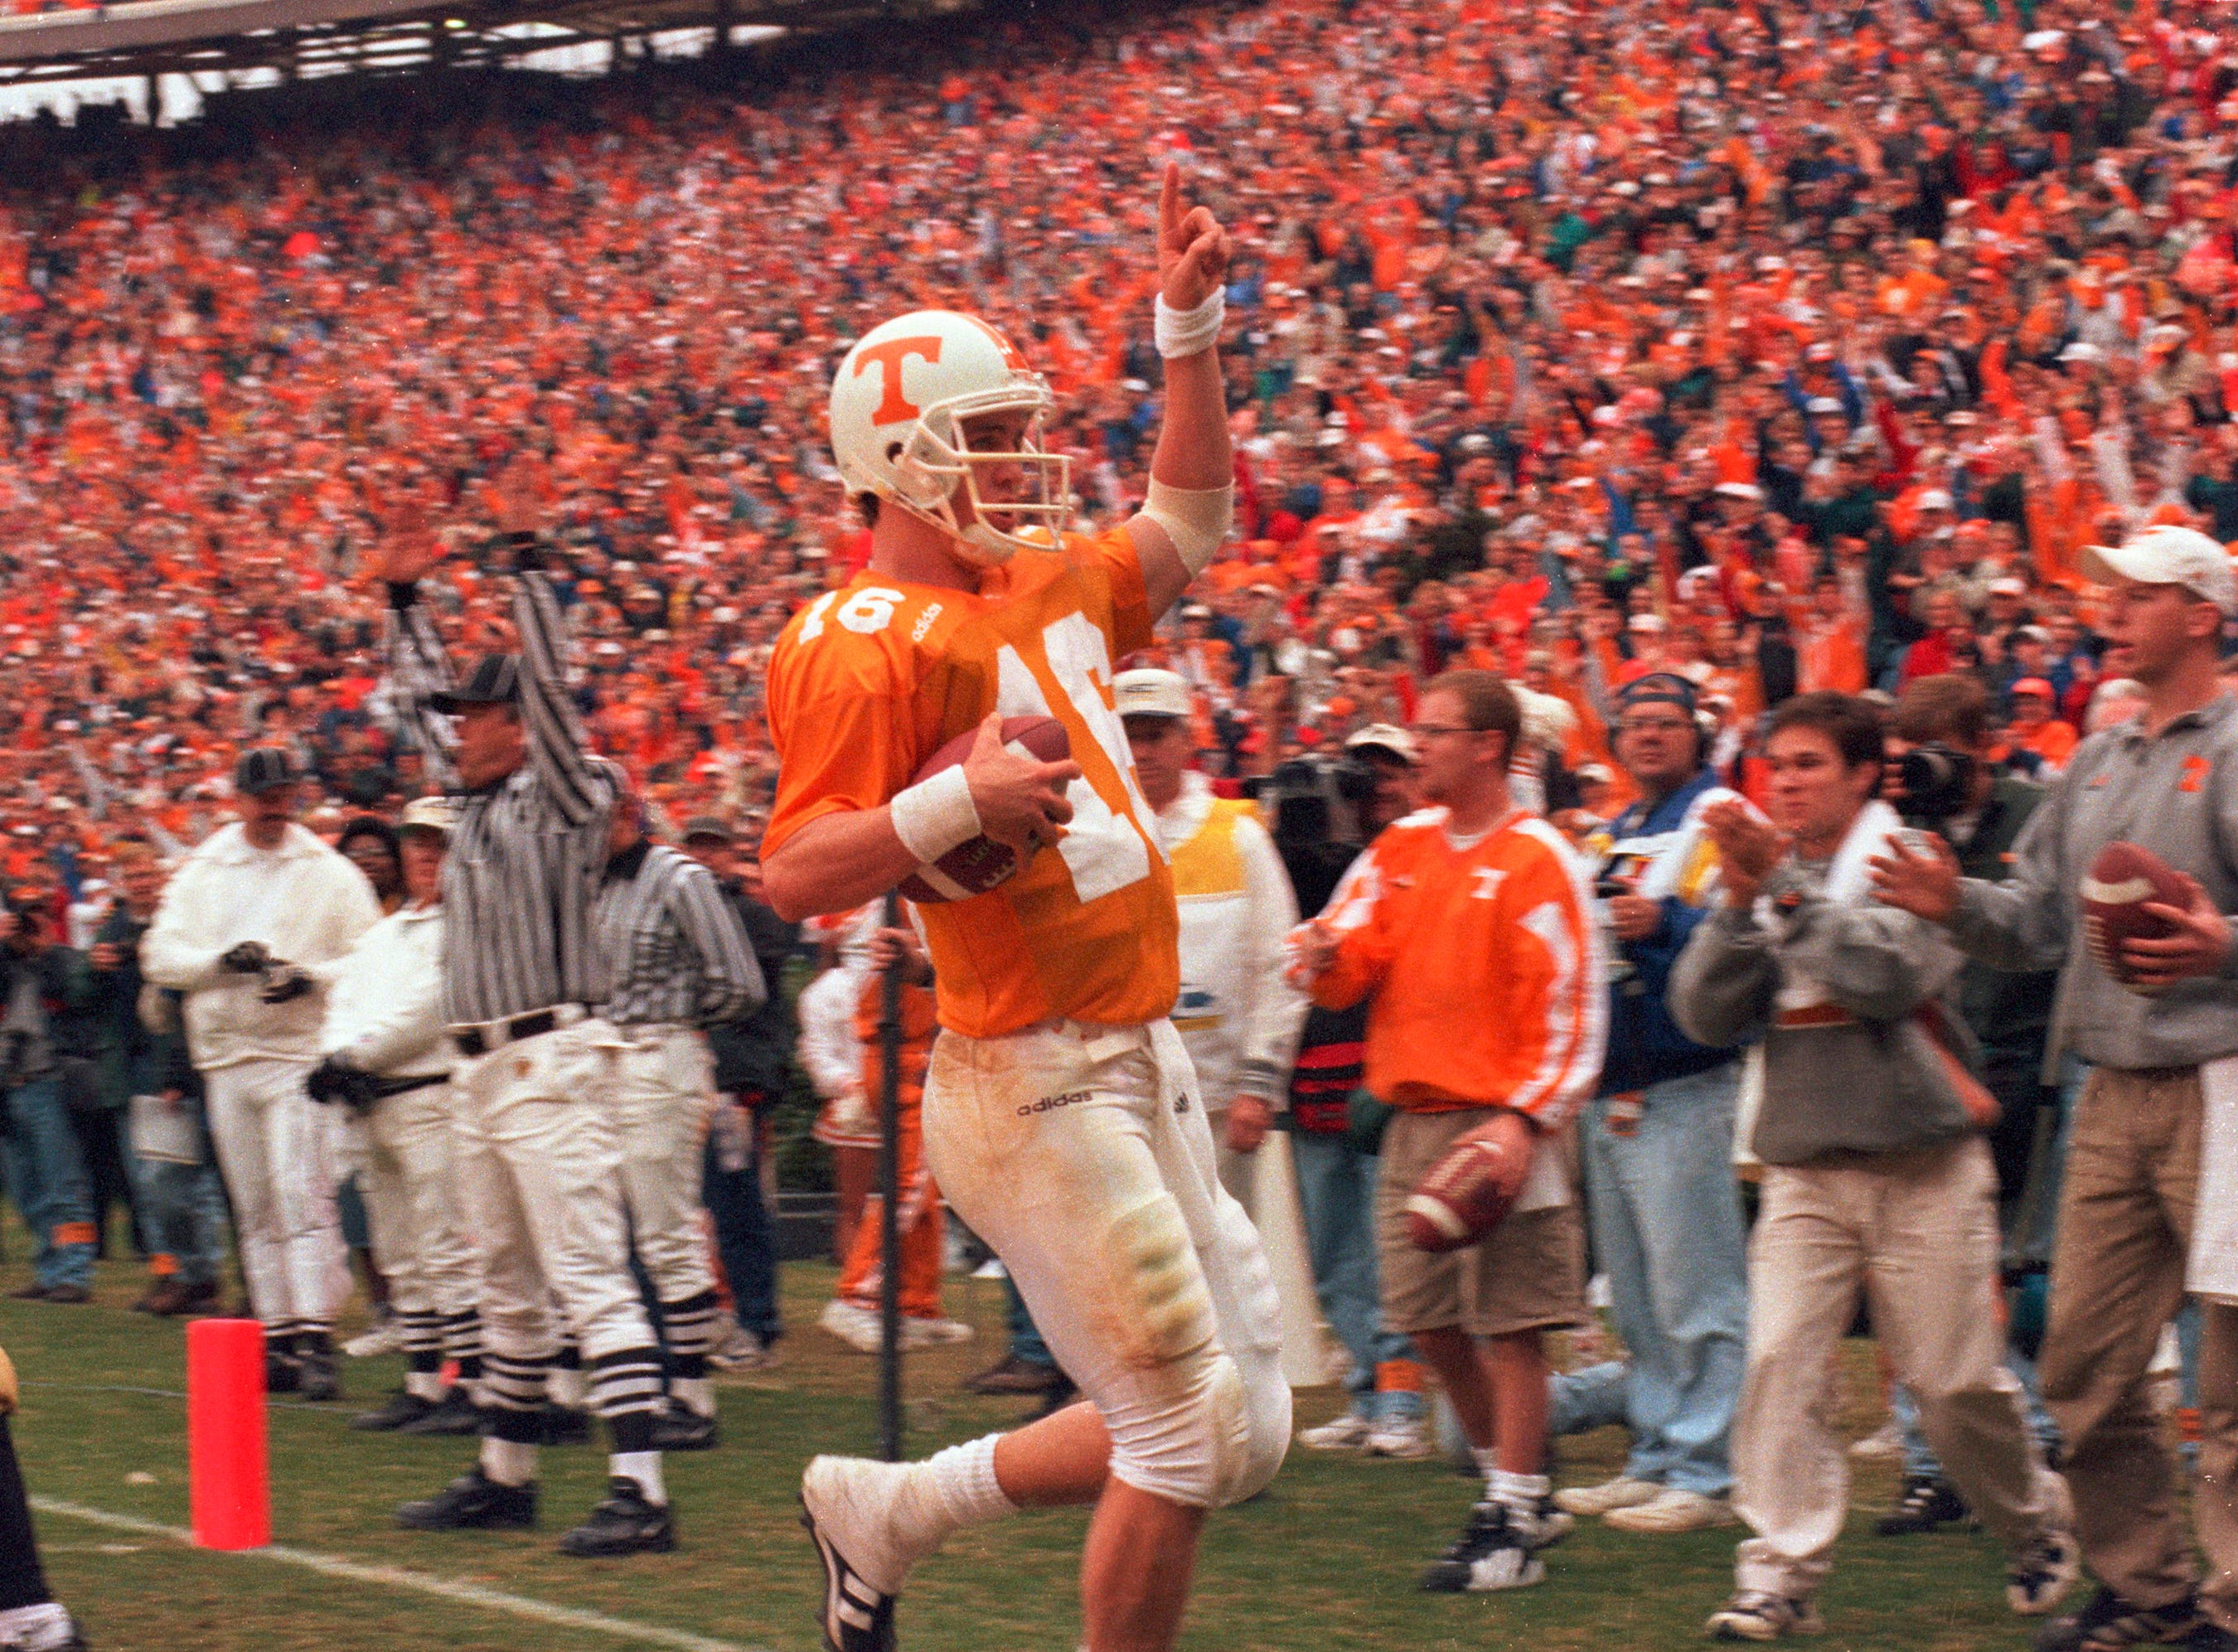 In a Nov. 29, 1997, photograph, Tennessee quarterback Peyton Manning scores the winning touchdown in a 17-10 victory over Vanderbilt during his final game at Neyland Stadium.